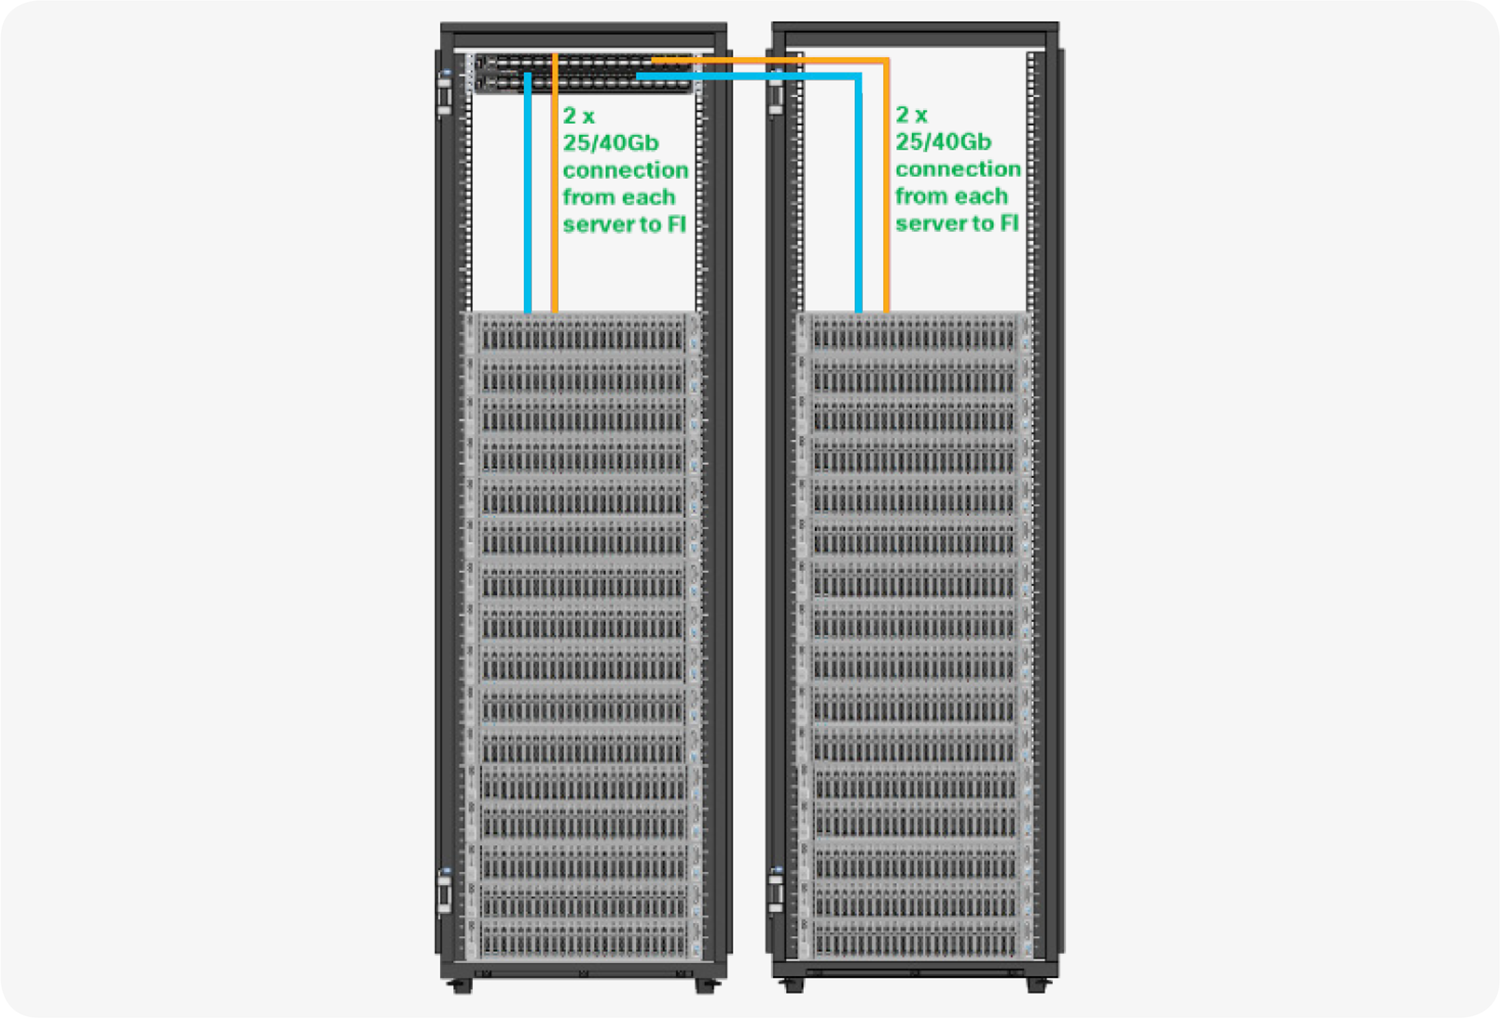 Cisco UCS C240 M5 reference architecture